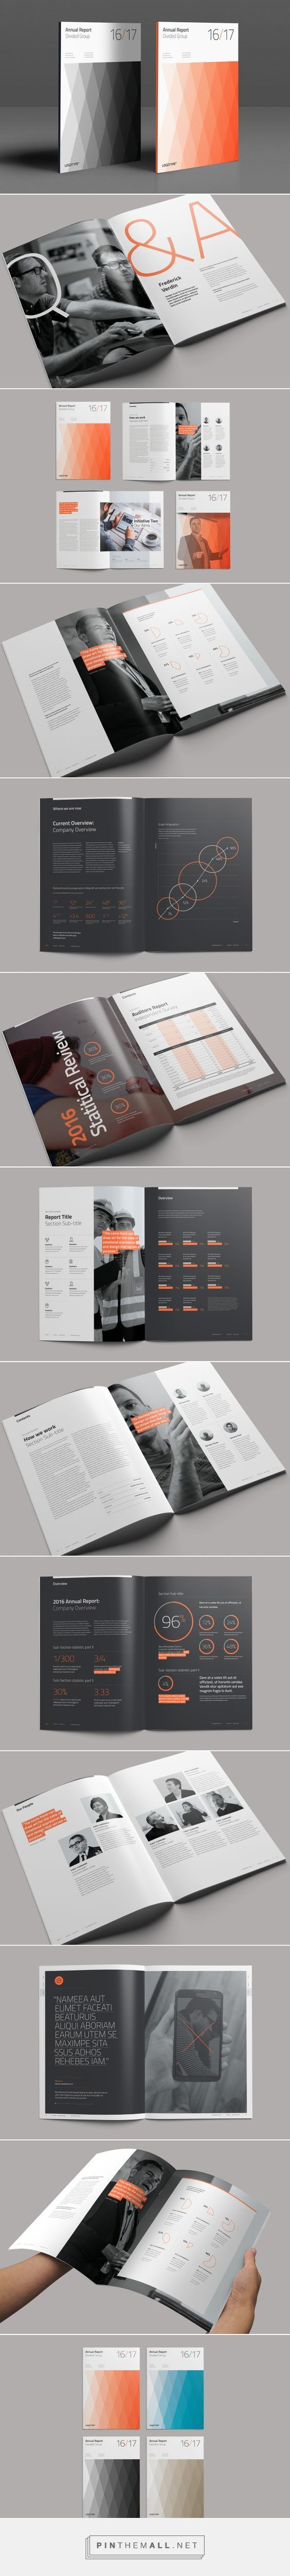 There are so many various types of brochures to showcase all sorts of information. We can help you break down exactly what is right for you and your company!